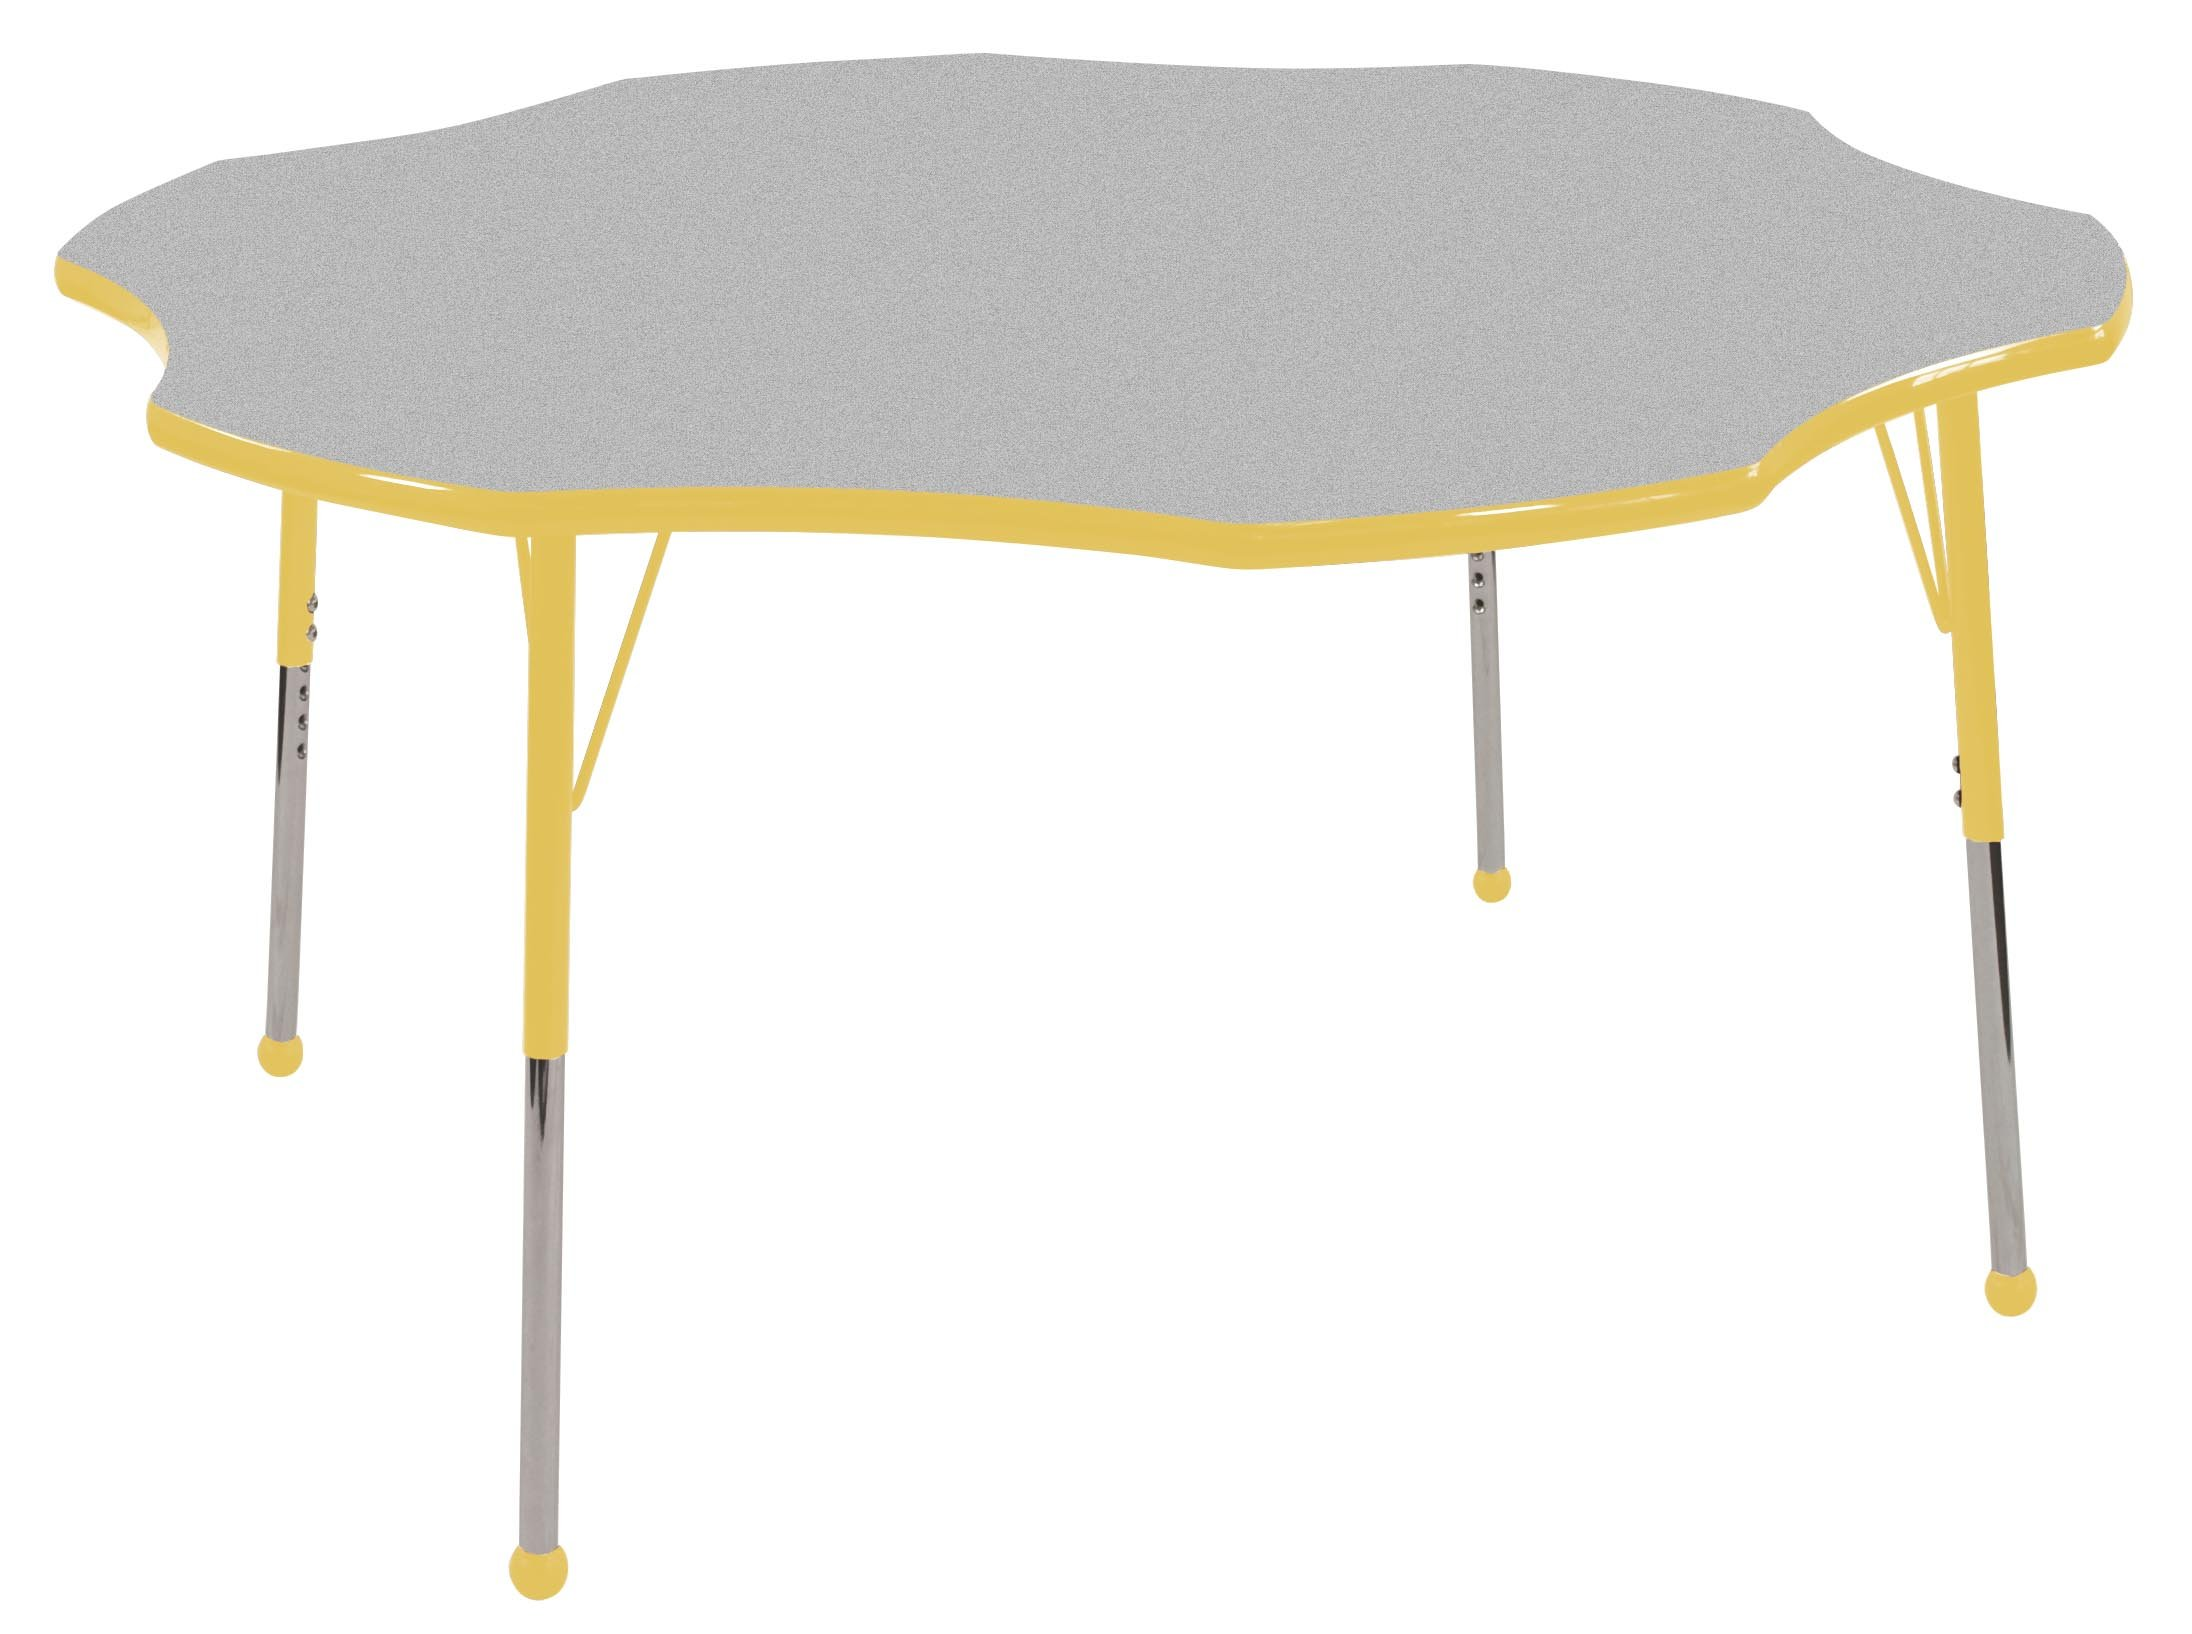 ECR4Kids 60'' Flower Shape Activity Table, Gray Top/Yellow Edge, Toddler Legs w/ Ball Glides and Six 10'' Yellow School Stack Chairs